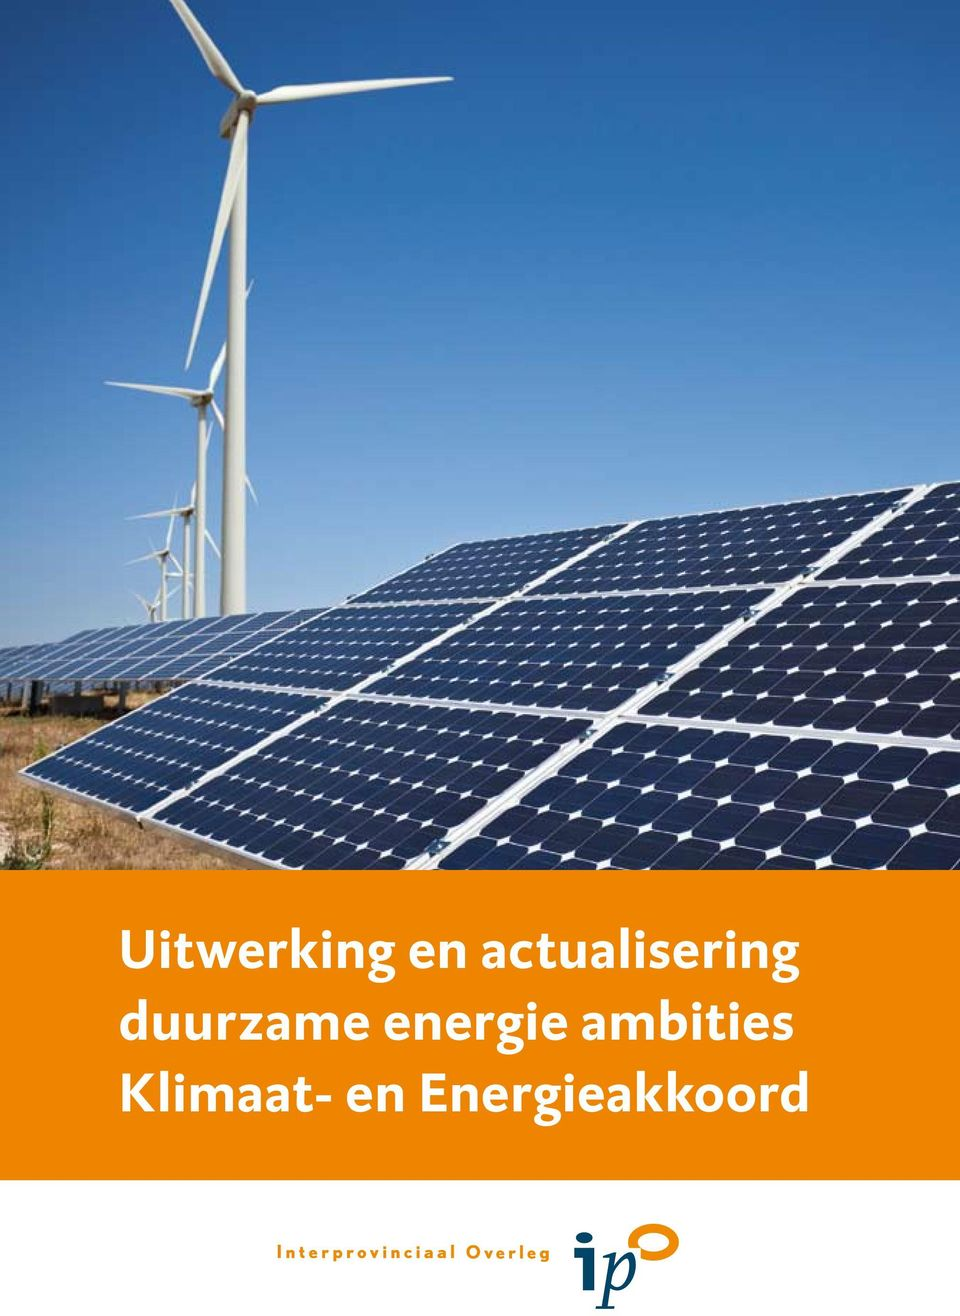 duurzame energie